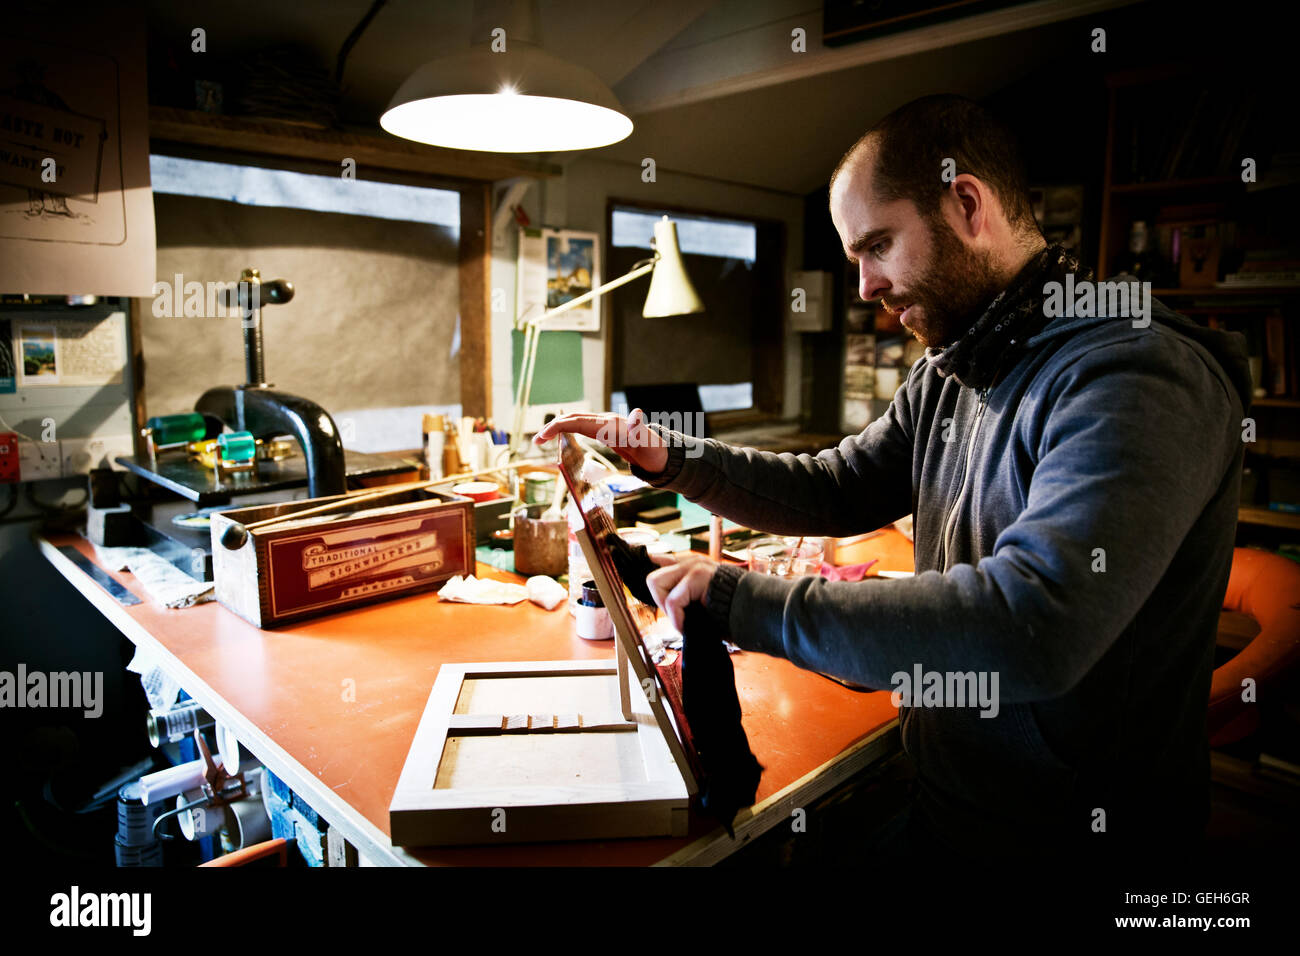 A sign writer at a workshop bench holding a sign. - Stock Image